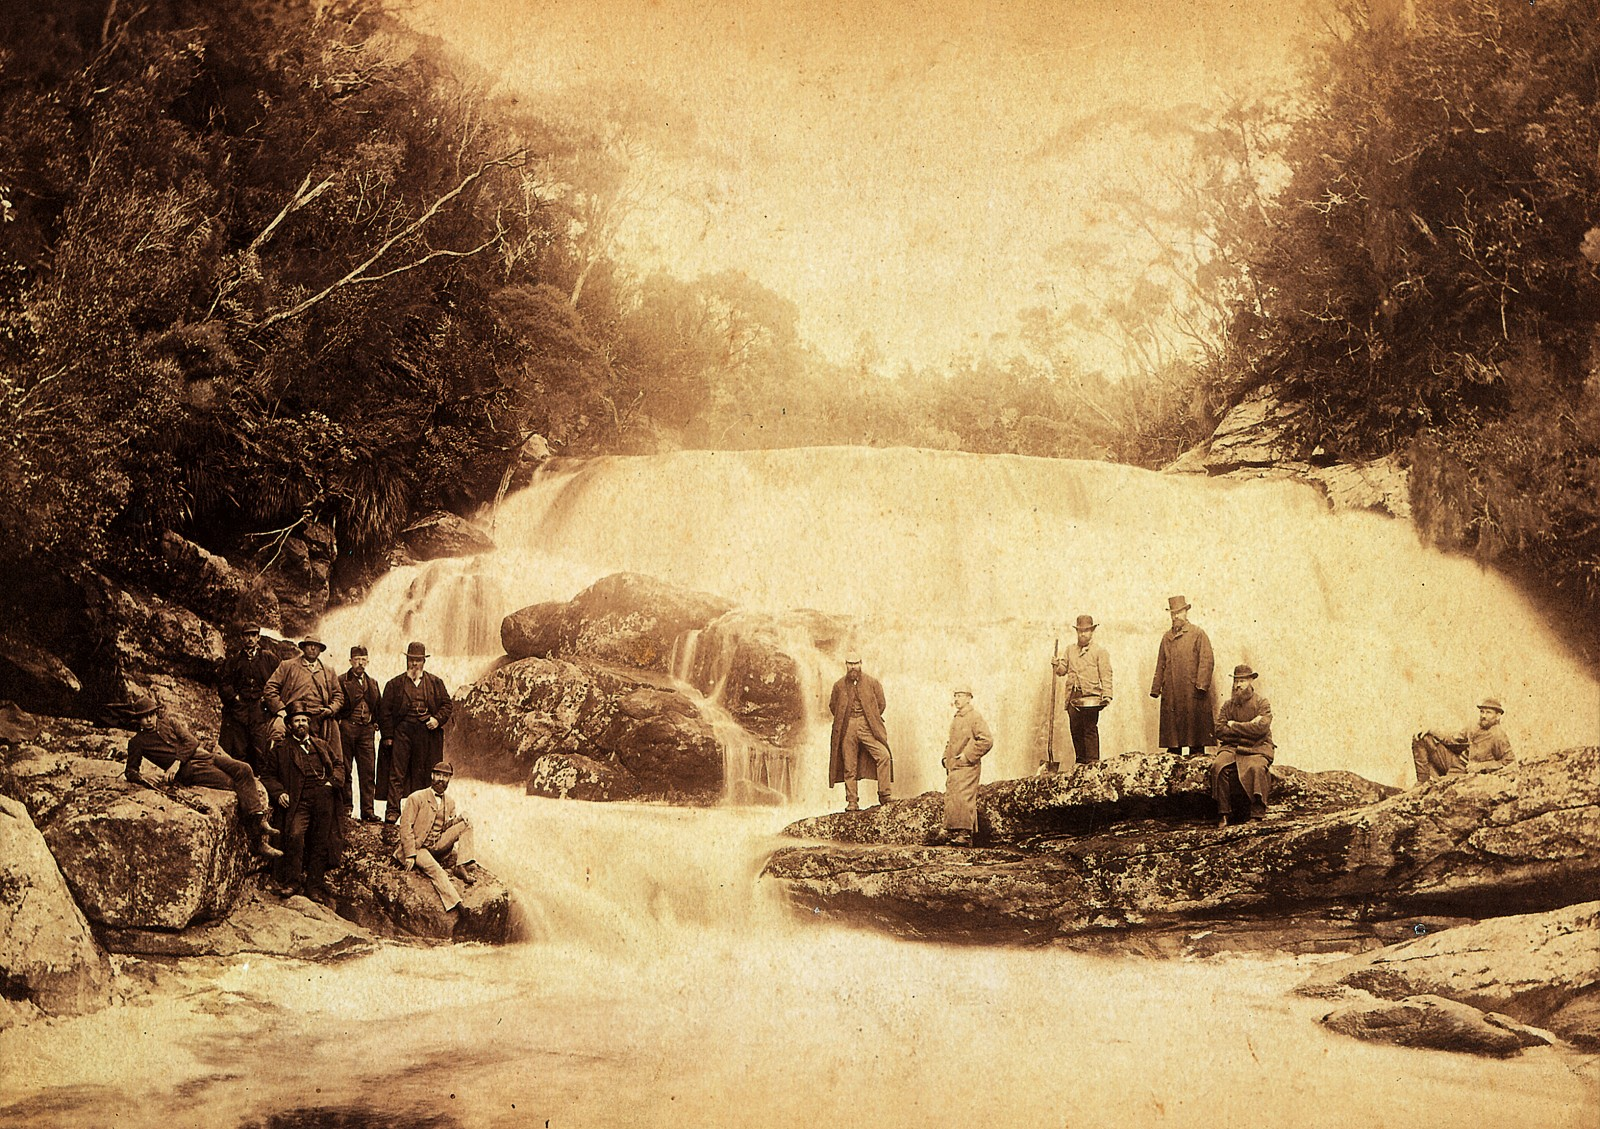 Todd (third from right), an Invercargill businessman, bought 50 acres of land here, including the waterfall, from a gold prospector. Although the original samples of cassiterite (tin oxied) were collected in Pegasus Creek, just above the falls, subsequently yields were disappointing. Best approached from the water, Belltopper Falls are today a popular destination for sea kayakers paddling Port Pegasus' enclosed waters.